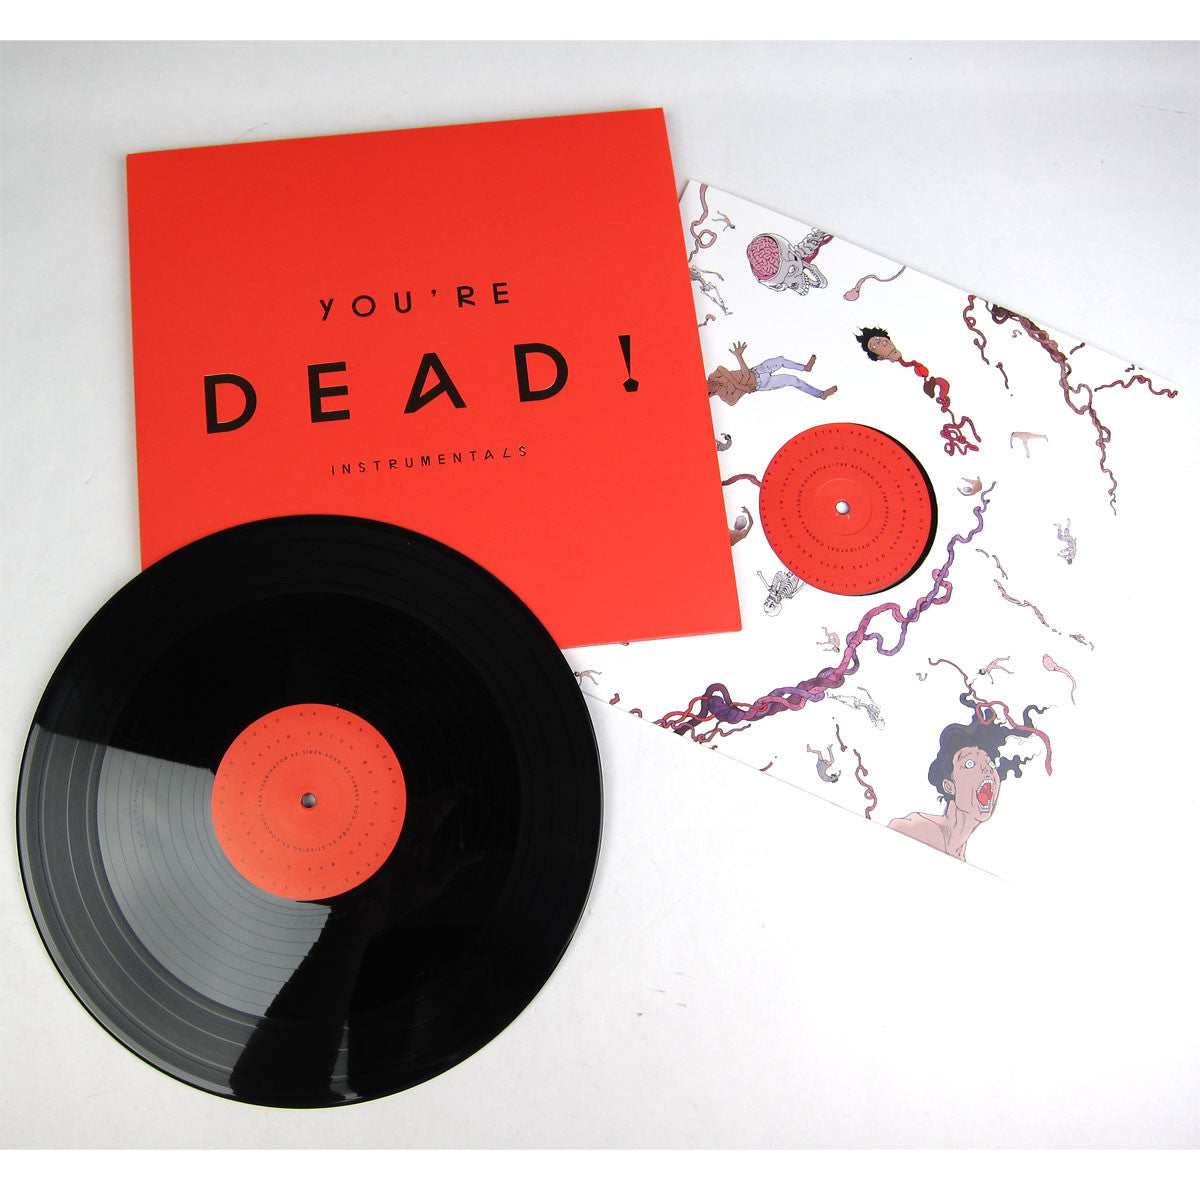 Flying Lotus: You're Dead! Deluxe Vinyl 4LP Boxset (Limited Edition) instrumentals